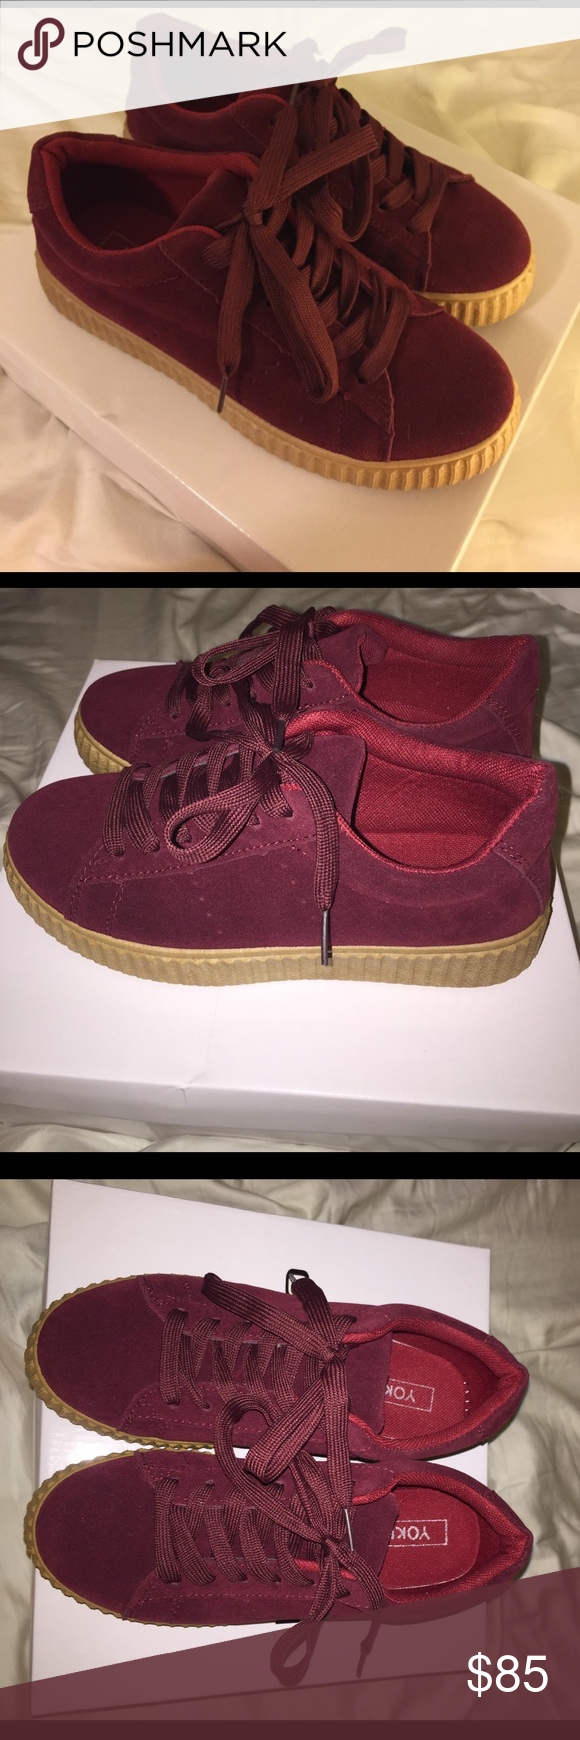 puma creepers look alike